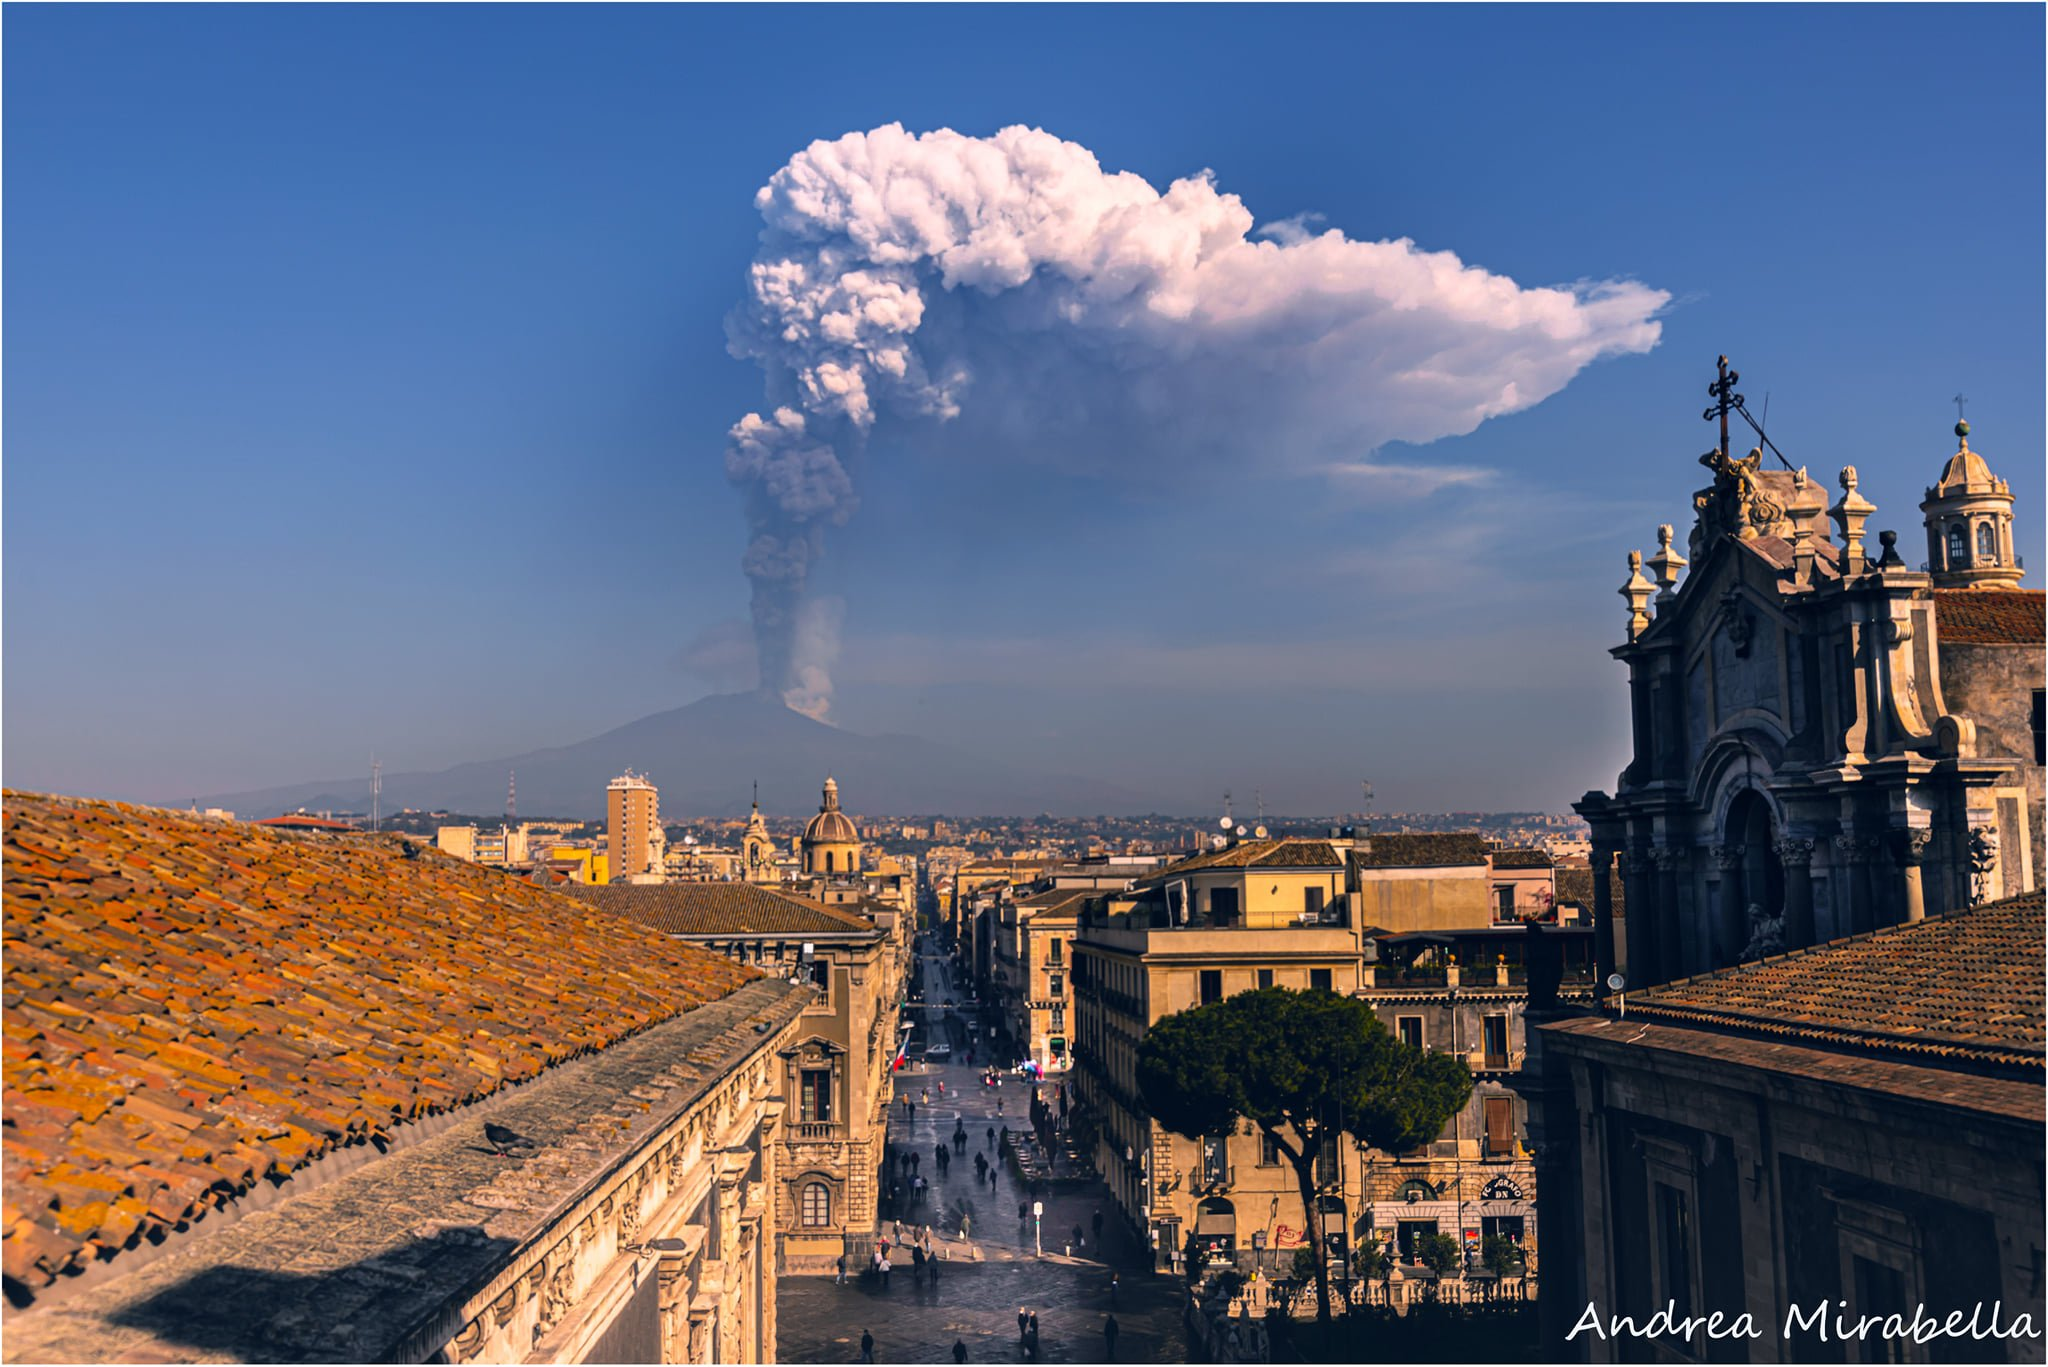 9th eruption, 4th mar 2021. View from Catania, Andrea Mirabella